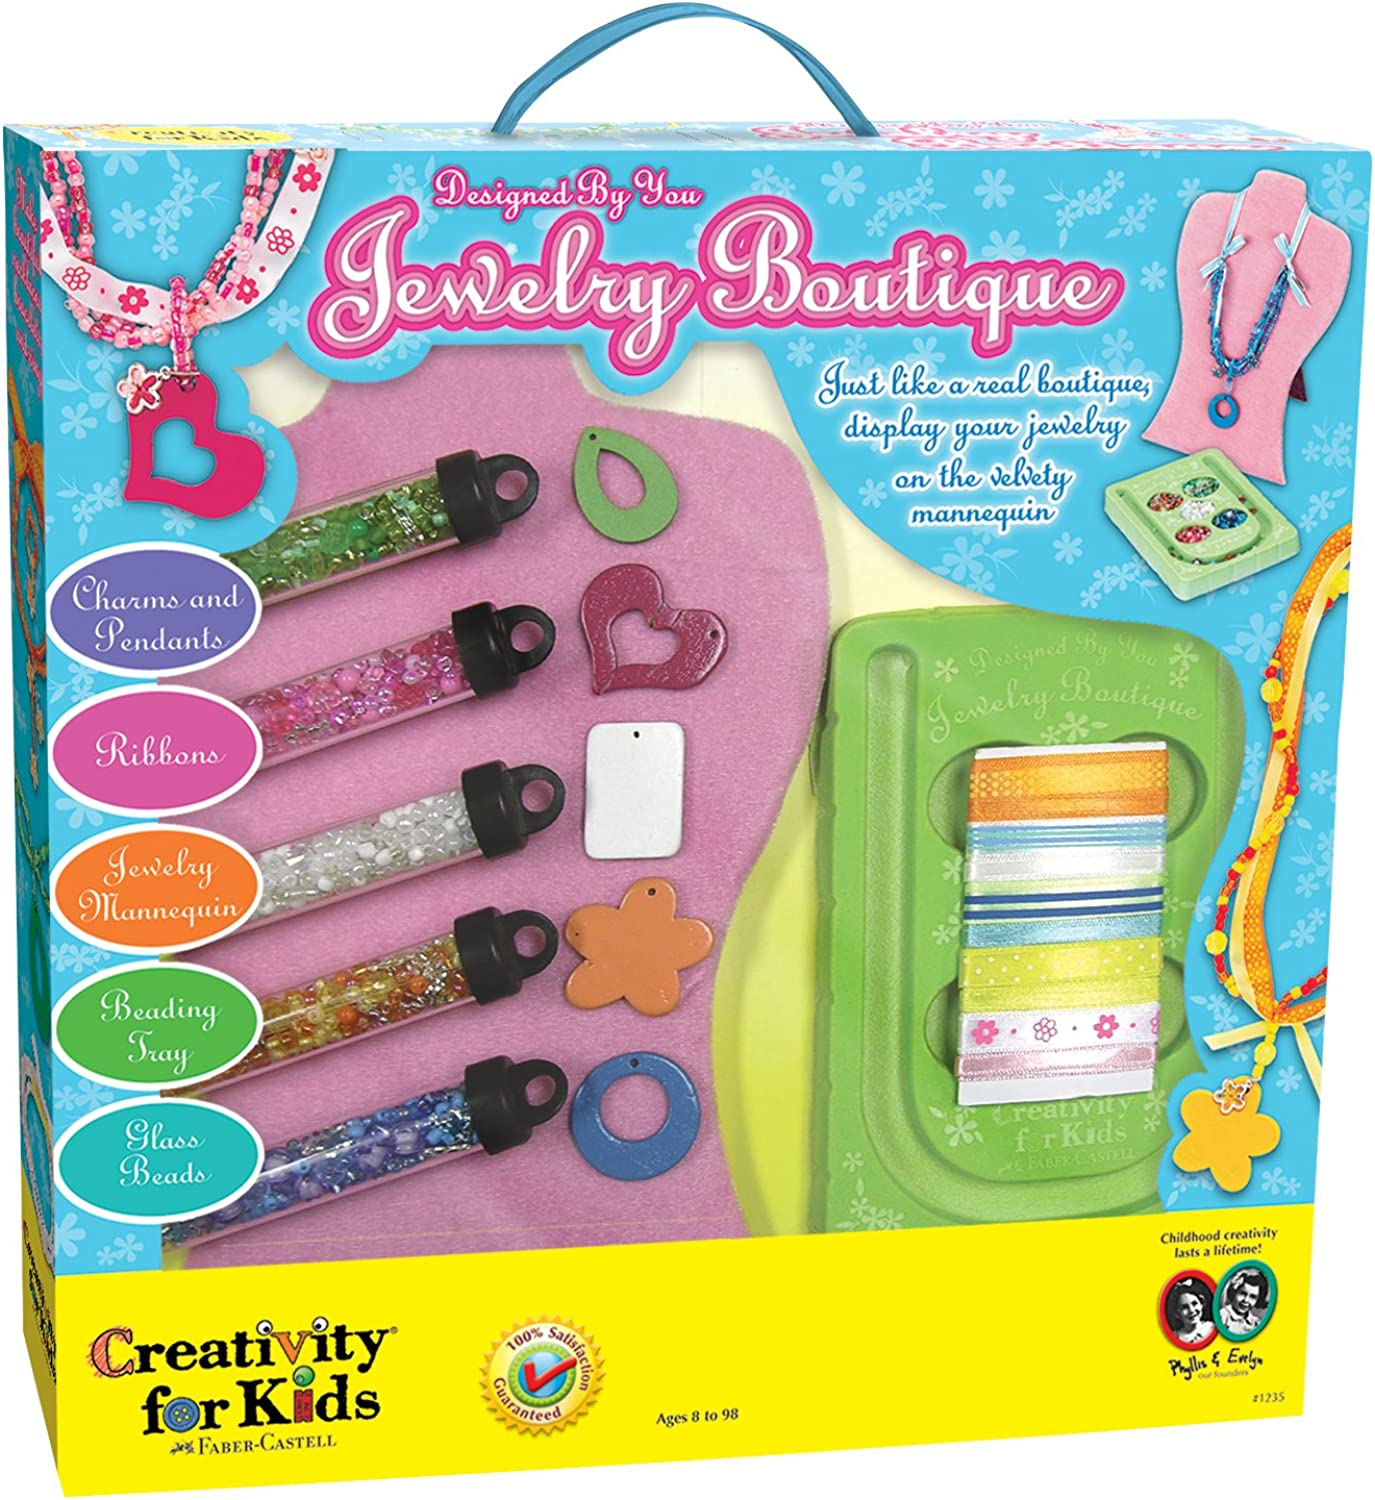 Creativity for for for Kids Design By You Jewerly Boutique B001ONKJKS | Elegante Und Stabile Verpackung  4a5b27